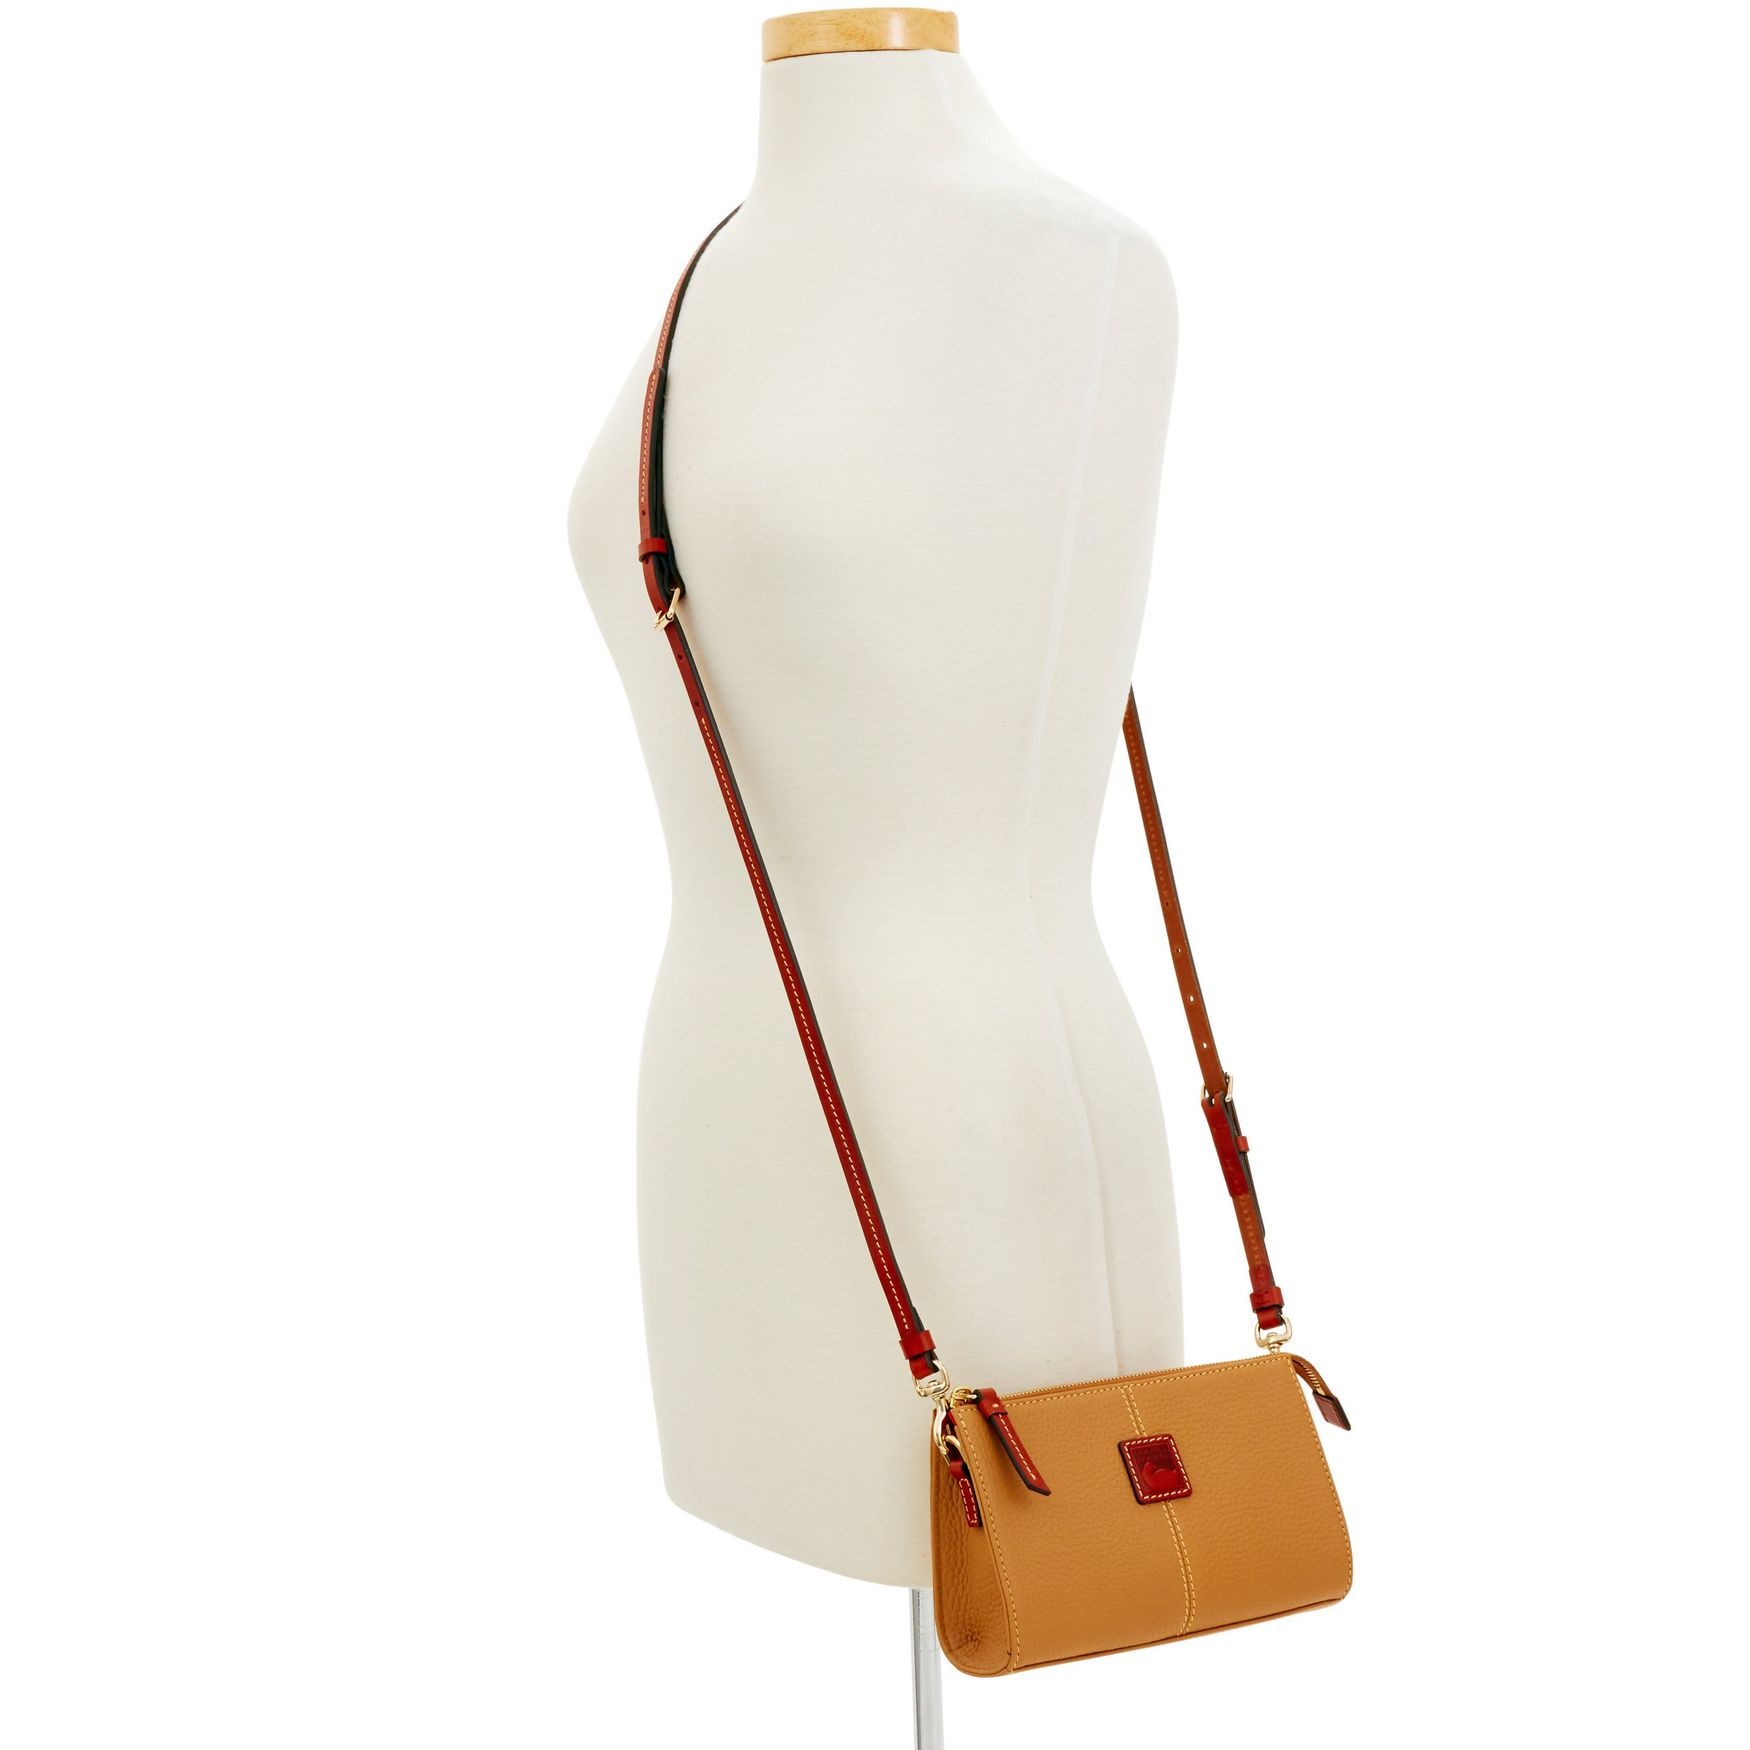 Dooney-amp-Bourke-Pebble-Grain-Small-Janine-Crossbody-Shoulder-Bag thumbnail 22